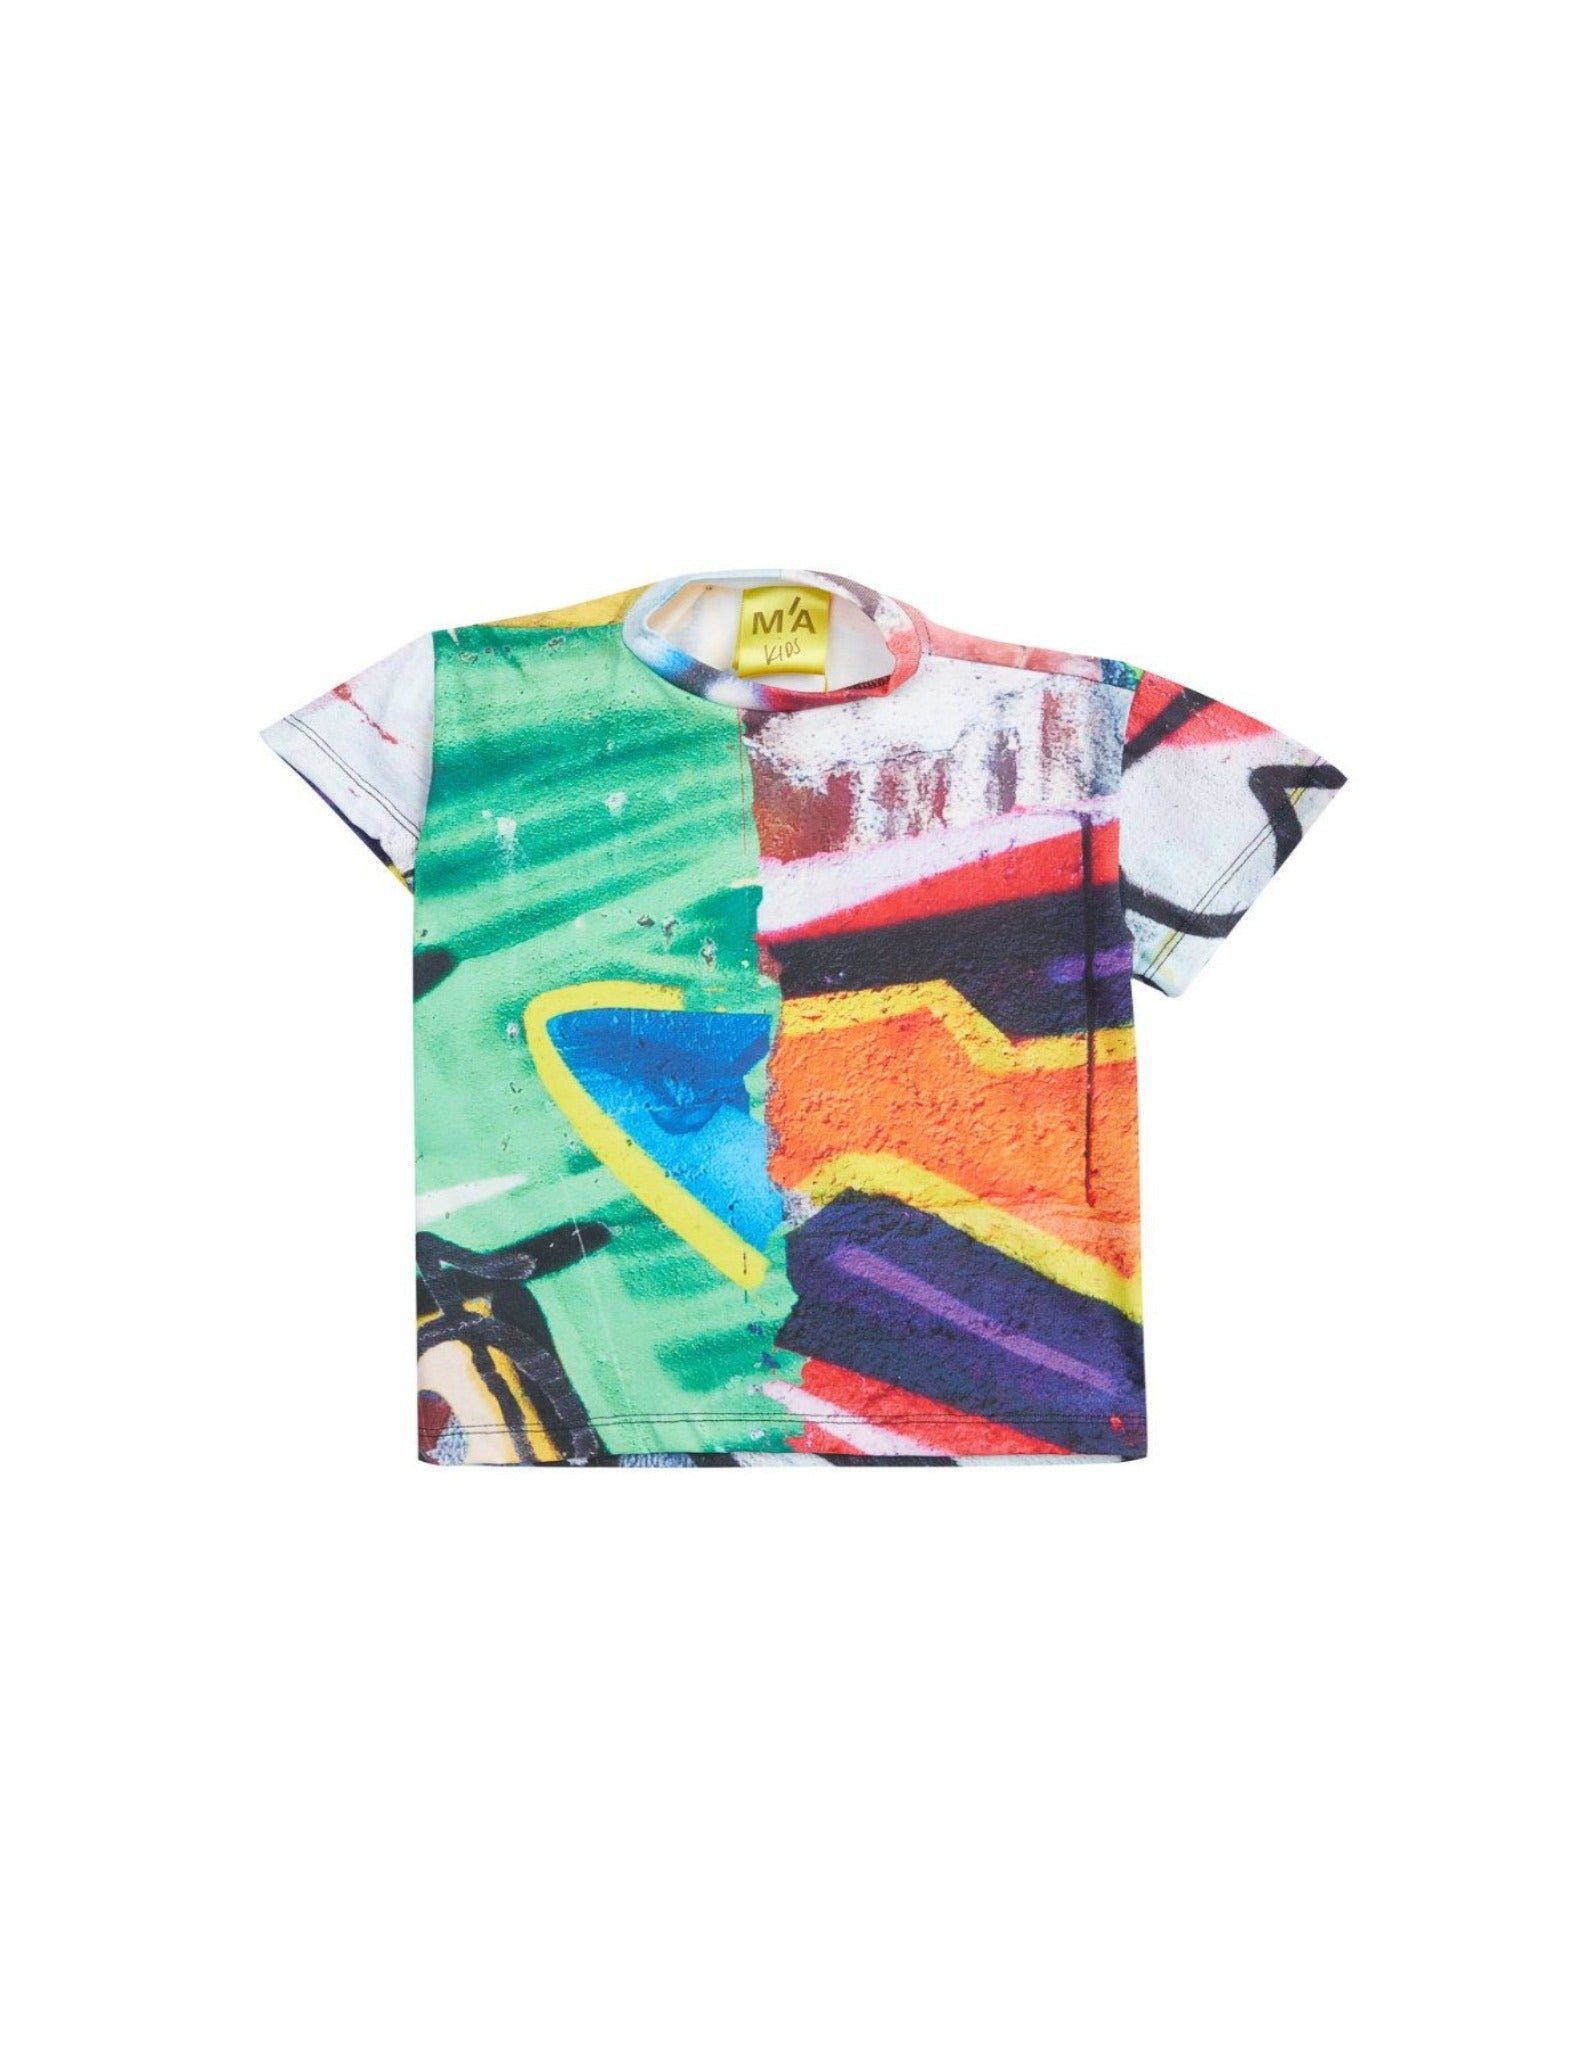 M'A KIDS DRAPED HEM T- SHIRT IN BRIGHT PRINT